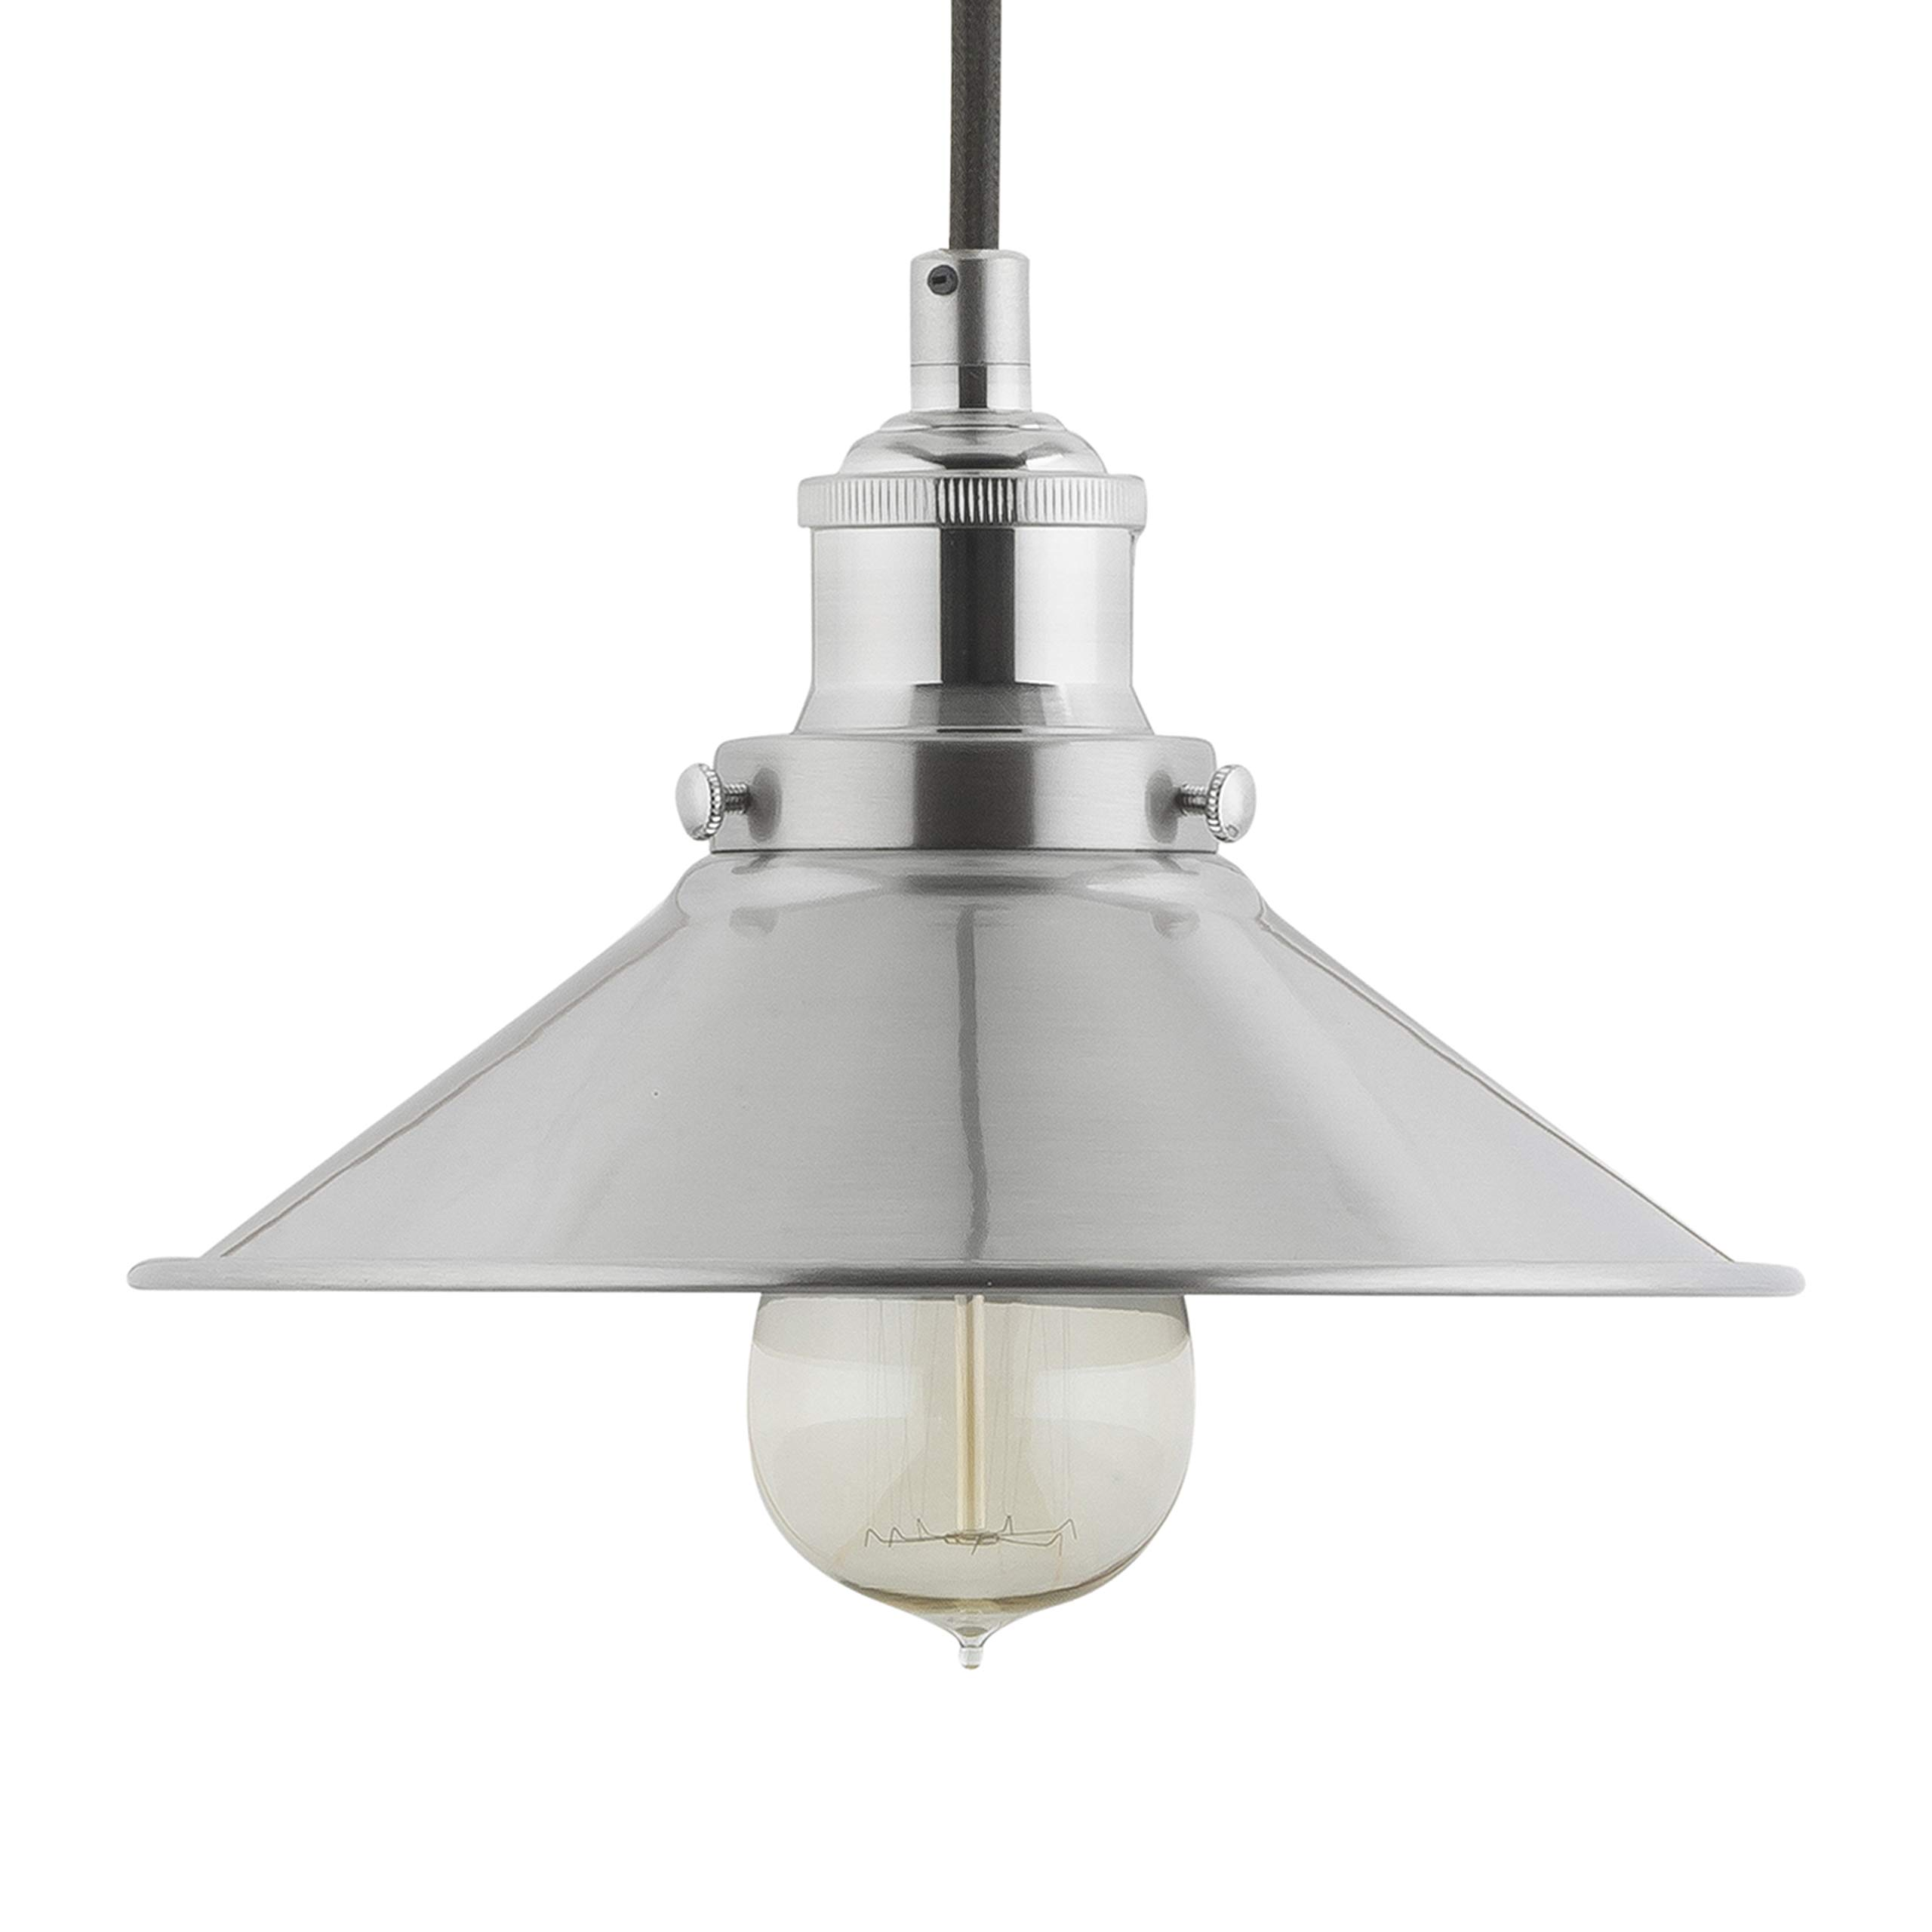 Andante Industrial Kitchen Pendant Light - Brushed Nickel Hanging Fixture - Linea di Liara LL-P407-BN